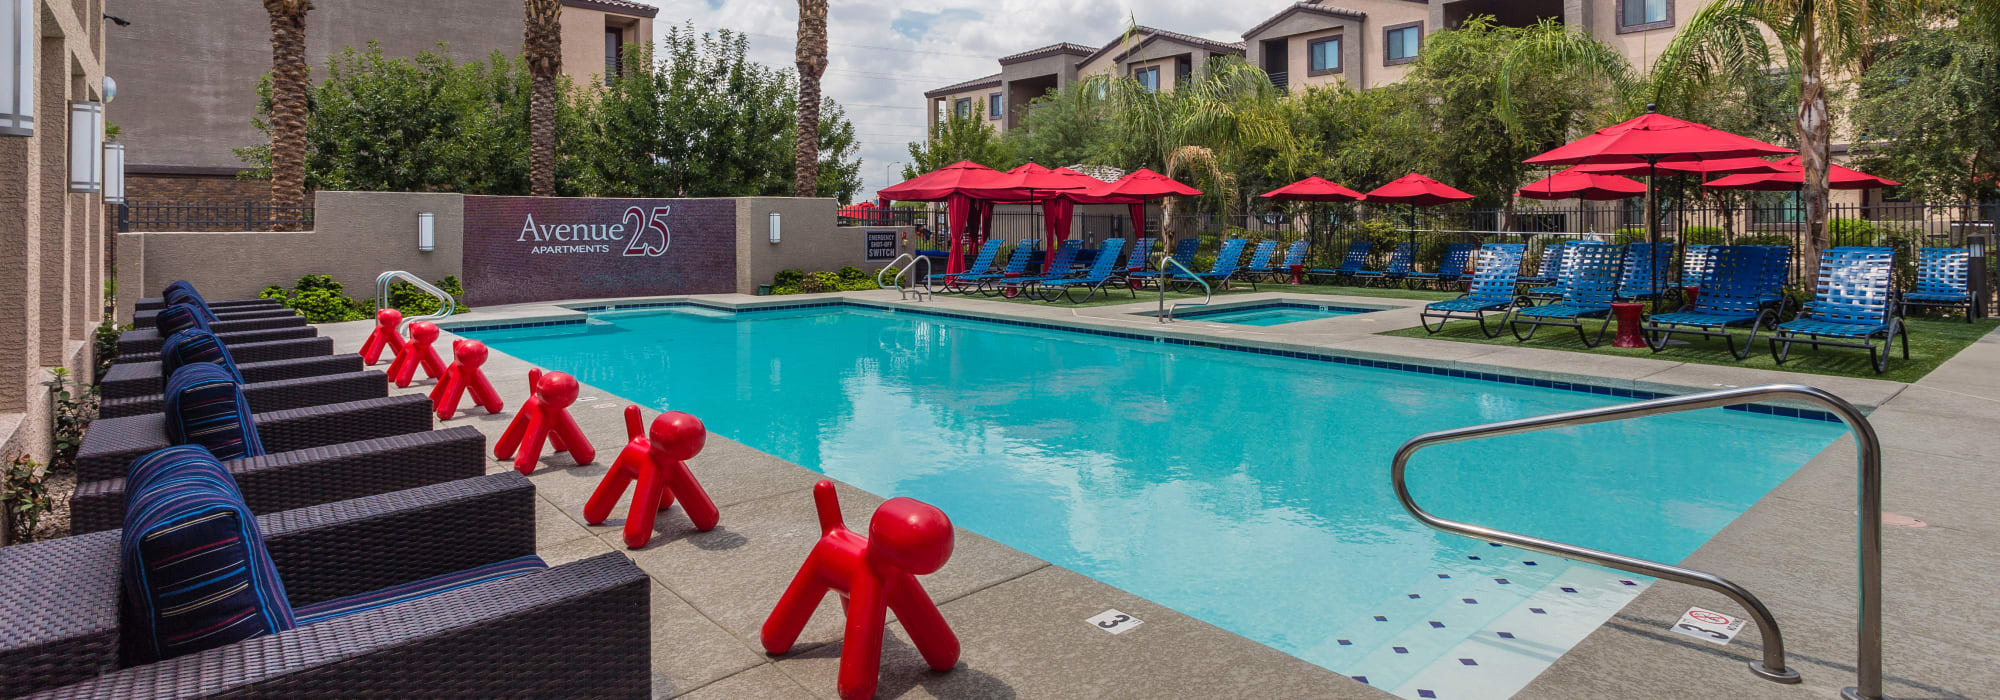 Beautiful resort-style pool with patio seating at Avenue 25 Apartments in Phoenix, Arizona